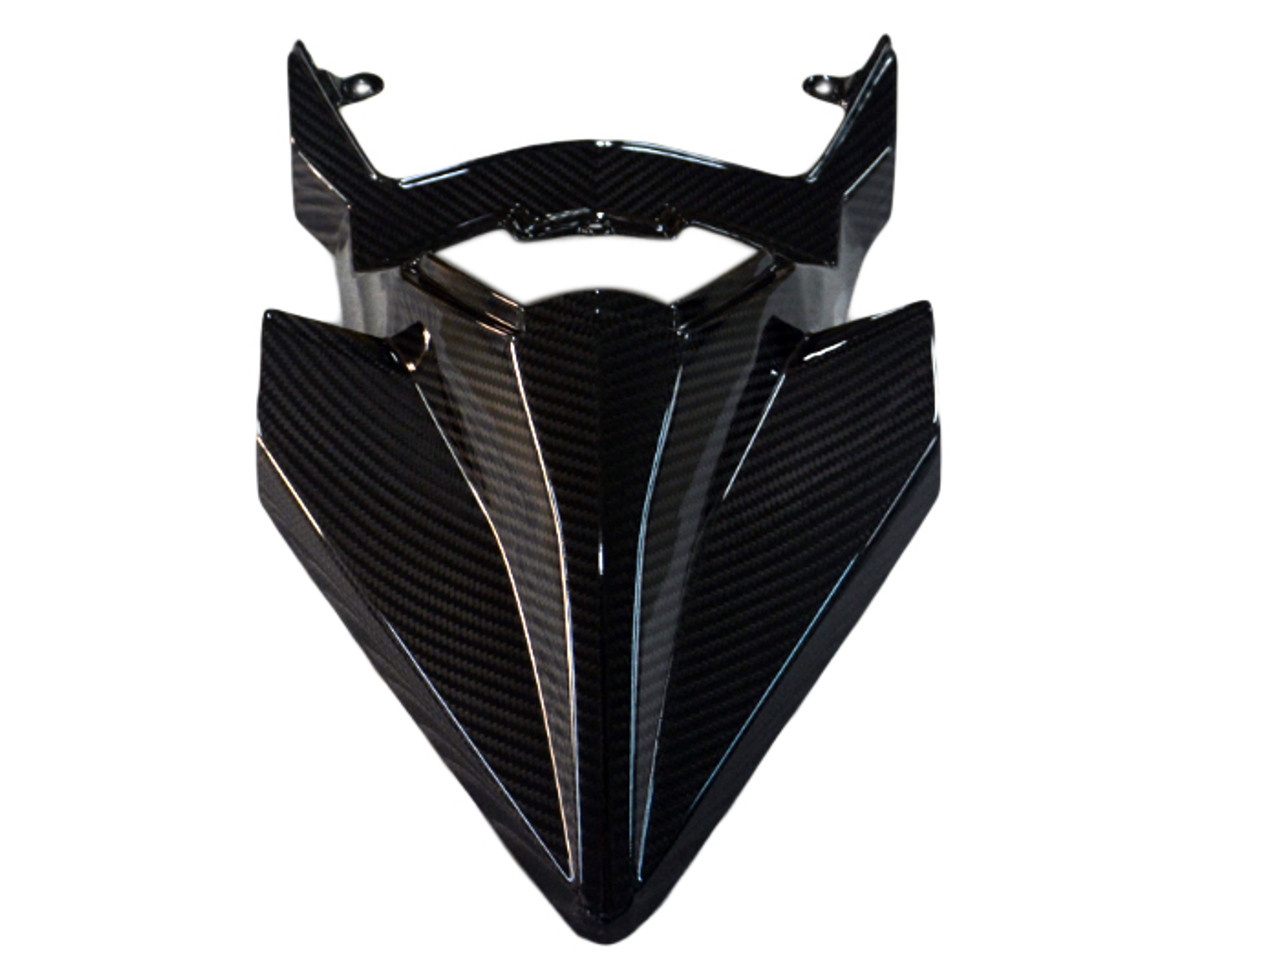 Tail Fairing in Glossy Twill Weave Carbon Fiber for Kawasaki H2